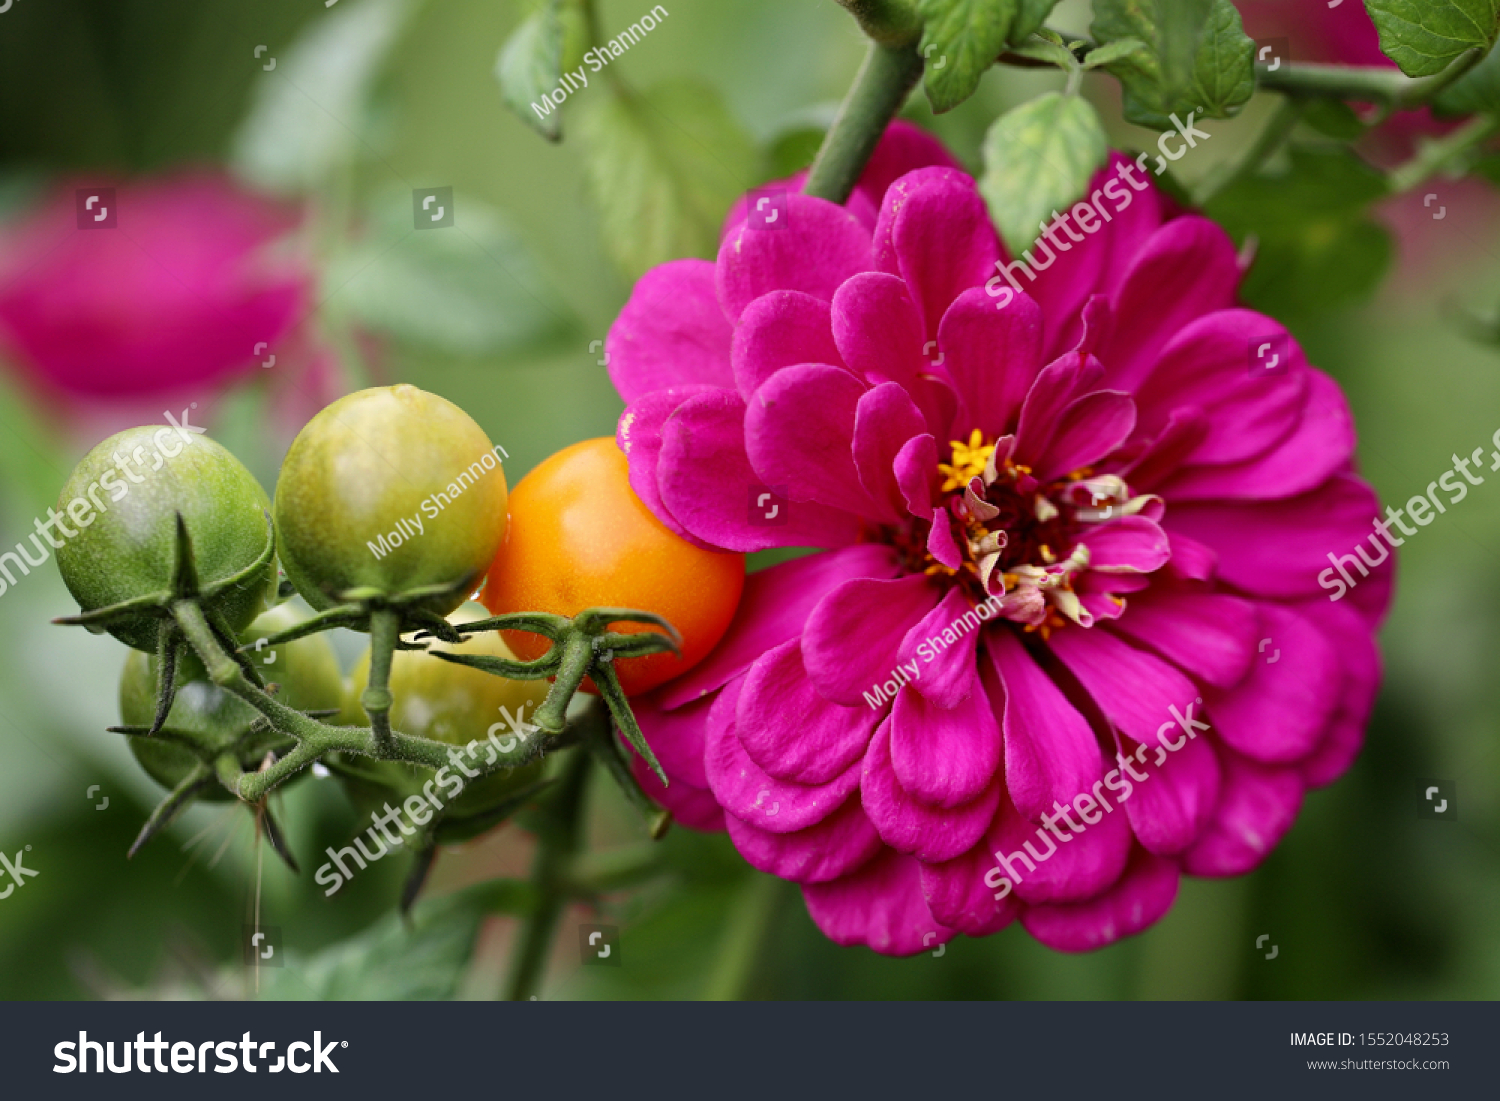 Companion planting of amethyst zinnia with sun gold cherry tomatoes are a perfect combination. Zinnias deter cucumber beetles and tomato worms. They attract predatory wasps and hover flies. #1552048253